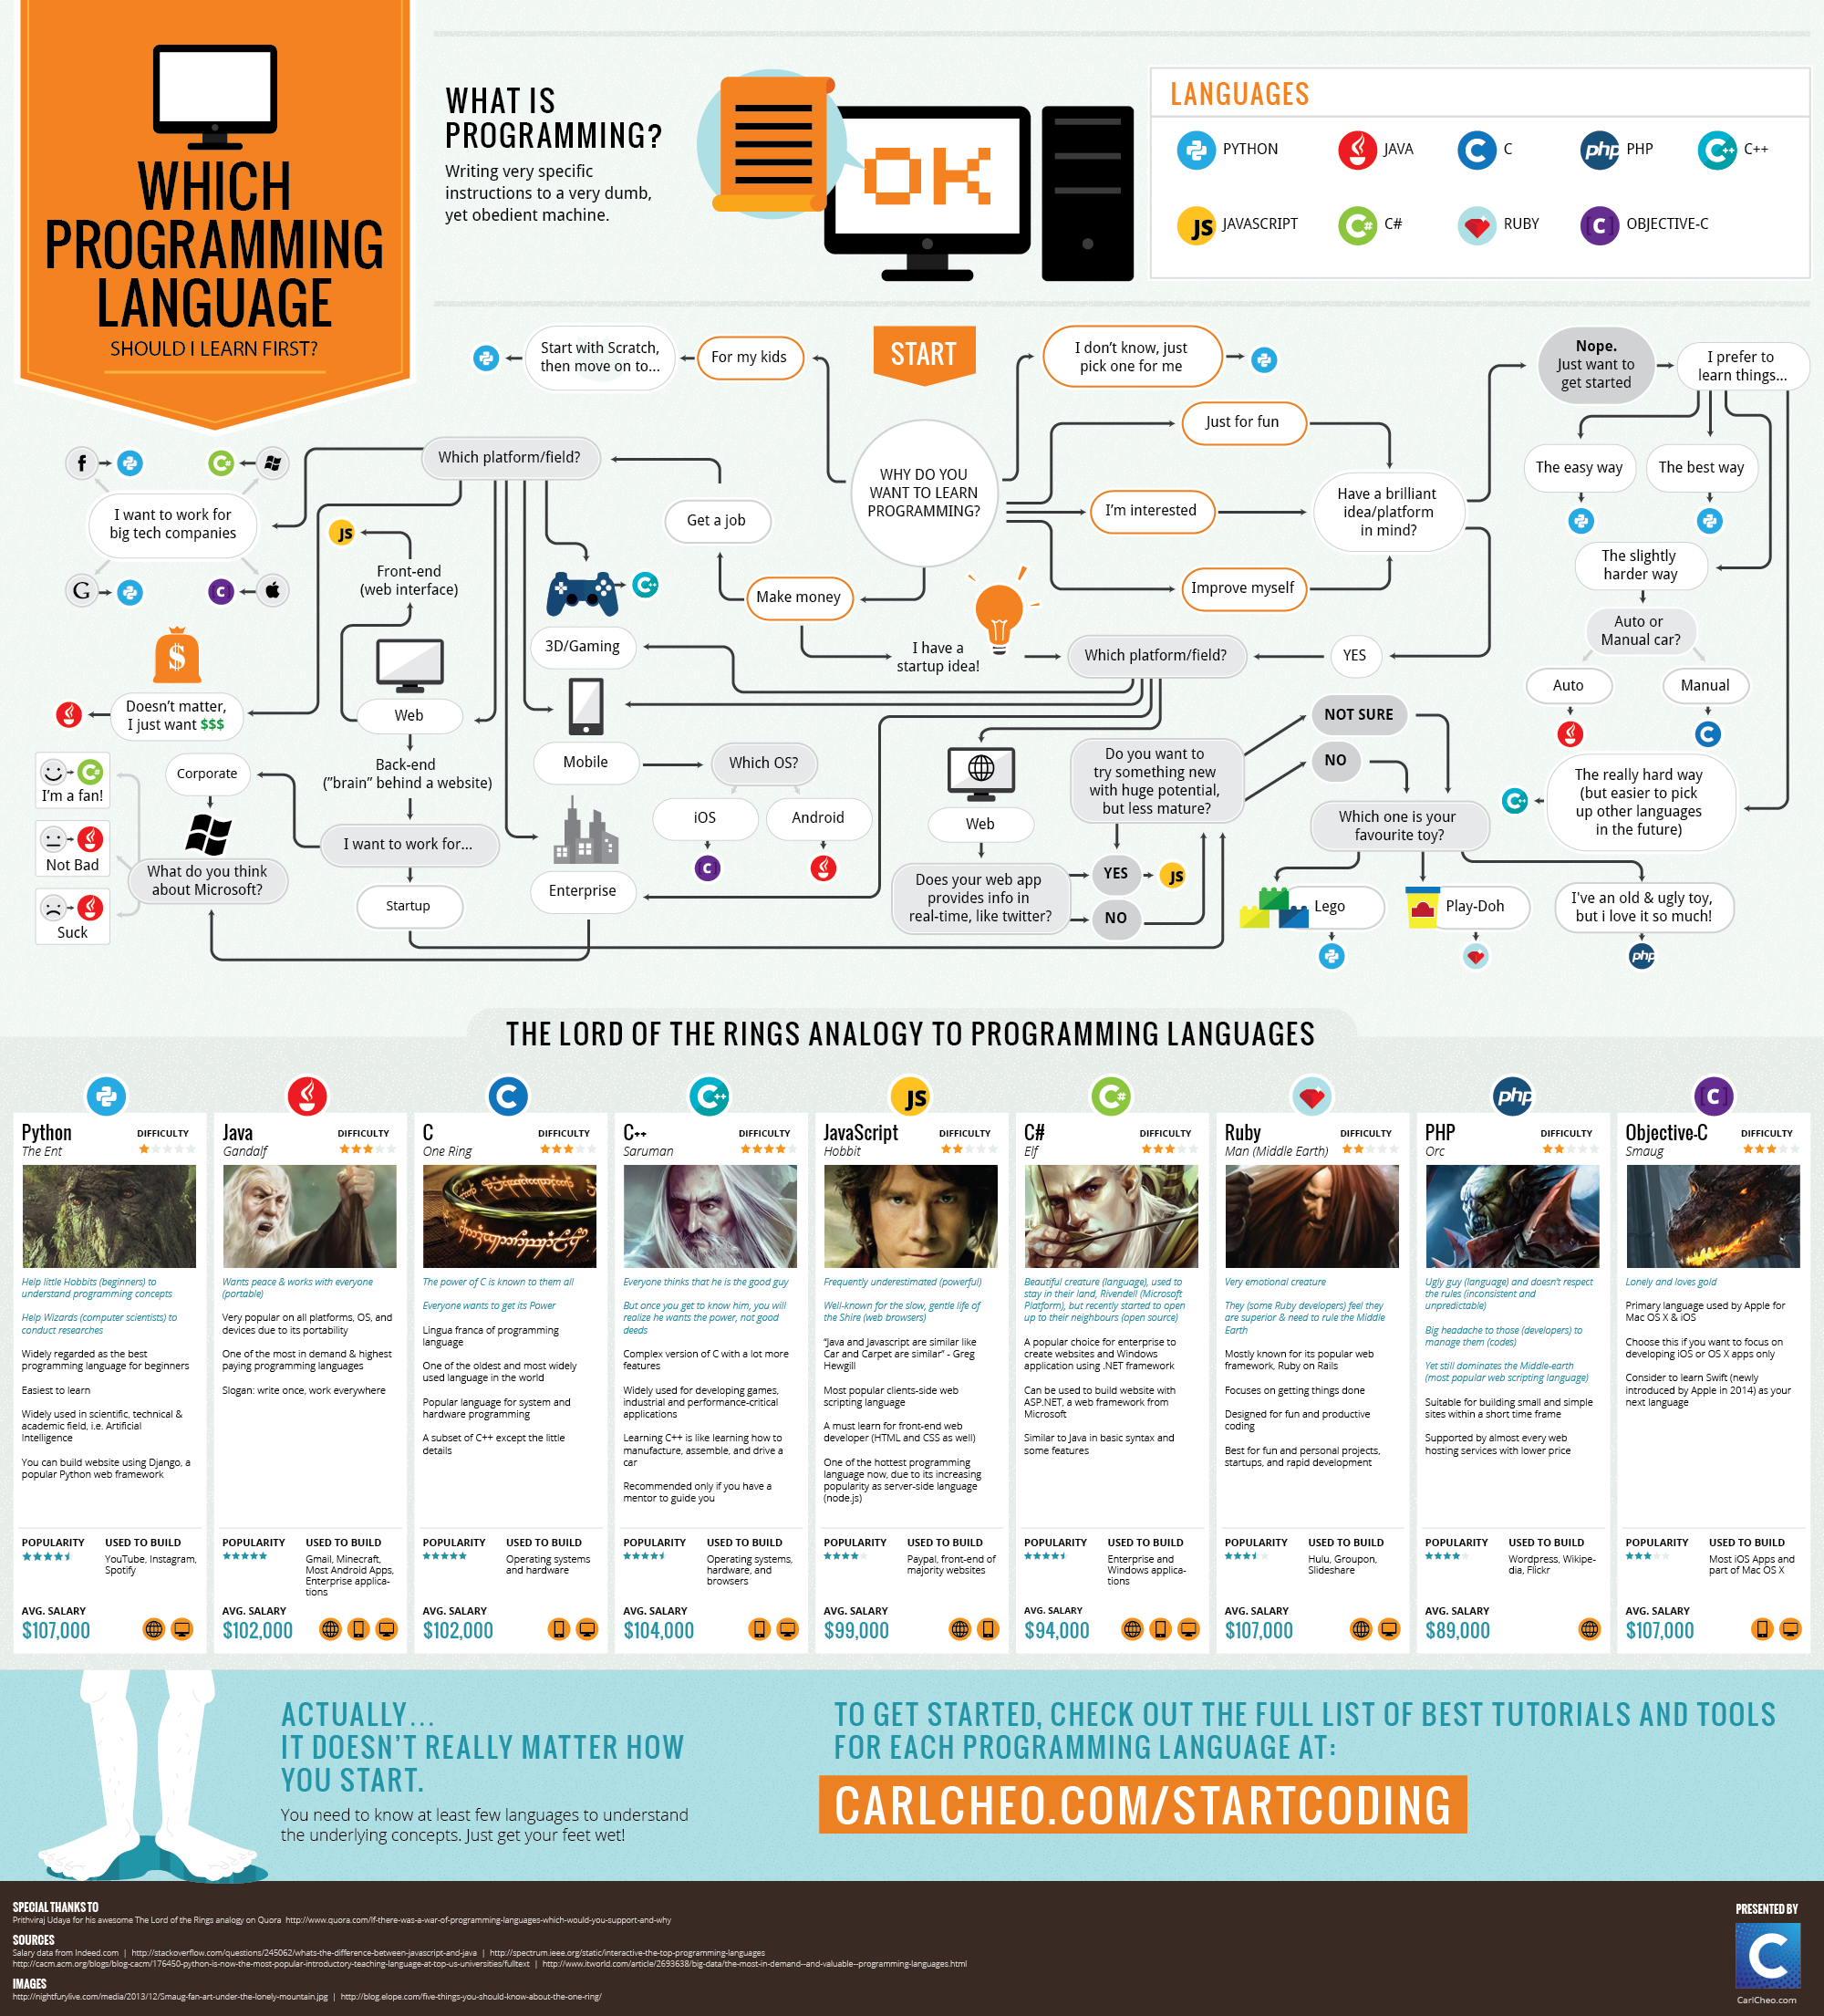 which-programming-language-should-i-learn-first-infographic.png